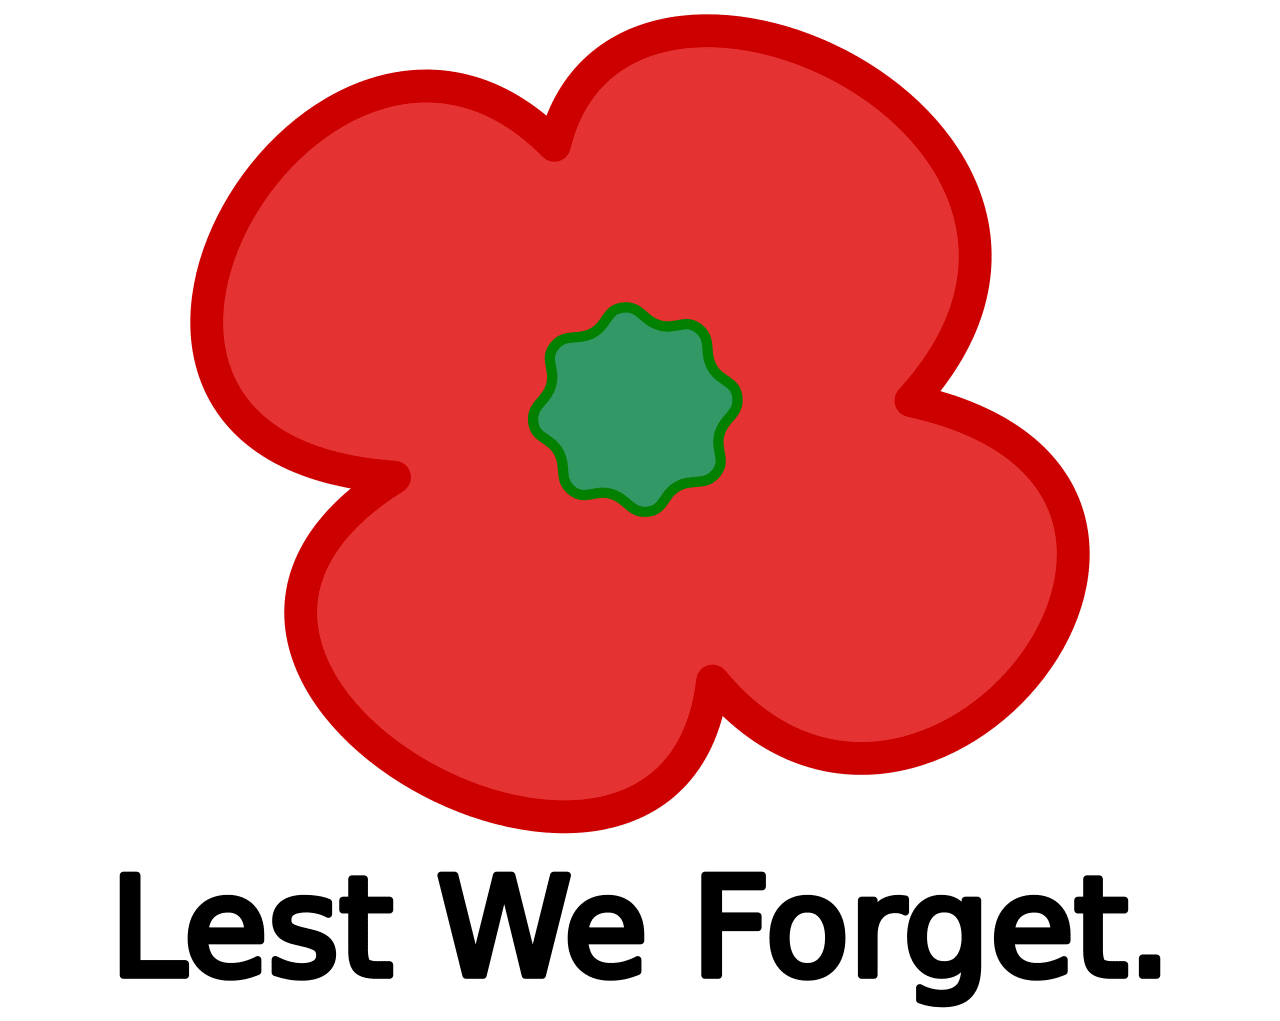 Remembrance king s college. Poppy clipart poppy appeal